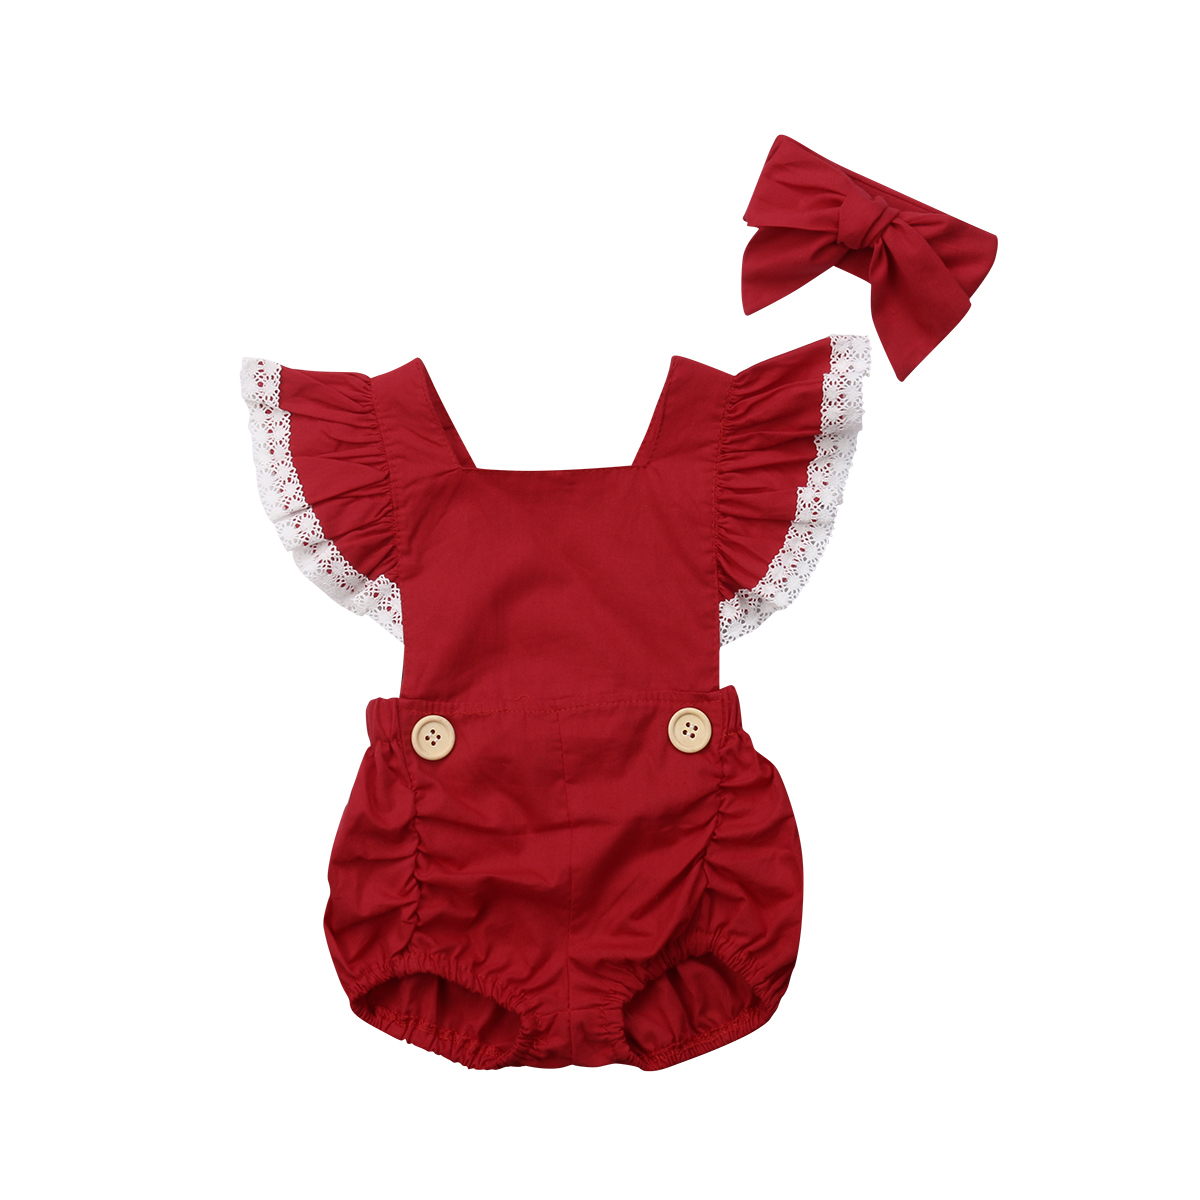 Lovely Newborn Baby Girls Lace Backless Christmas   Romper   Ruffle Sleeveless Jumpsuit Sunsuit Outfit Clothes